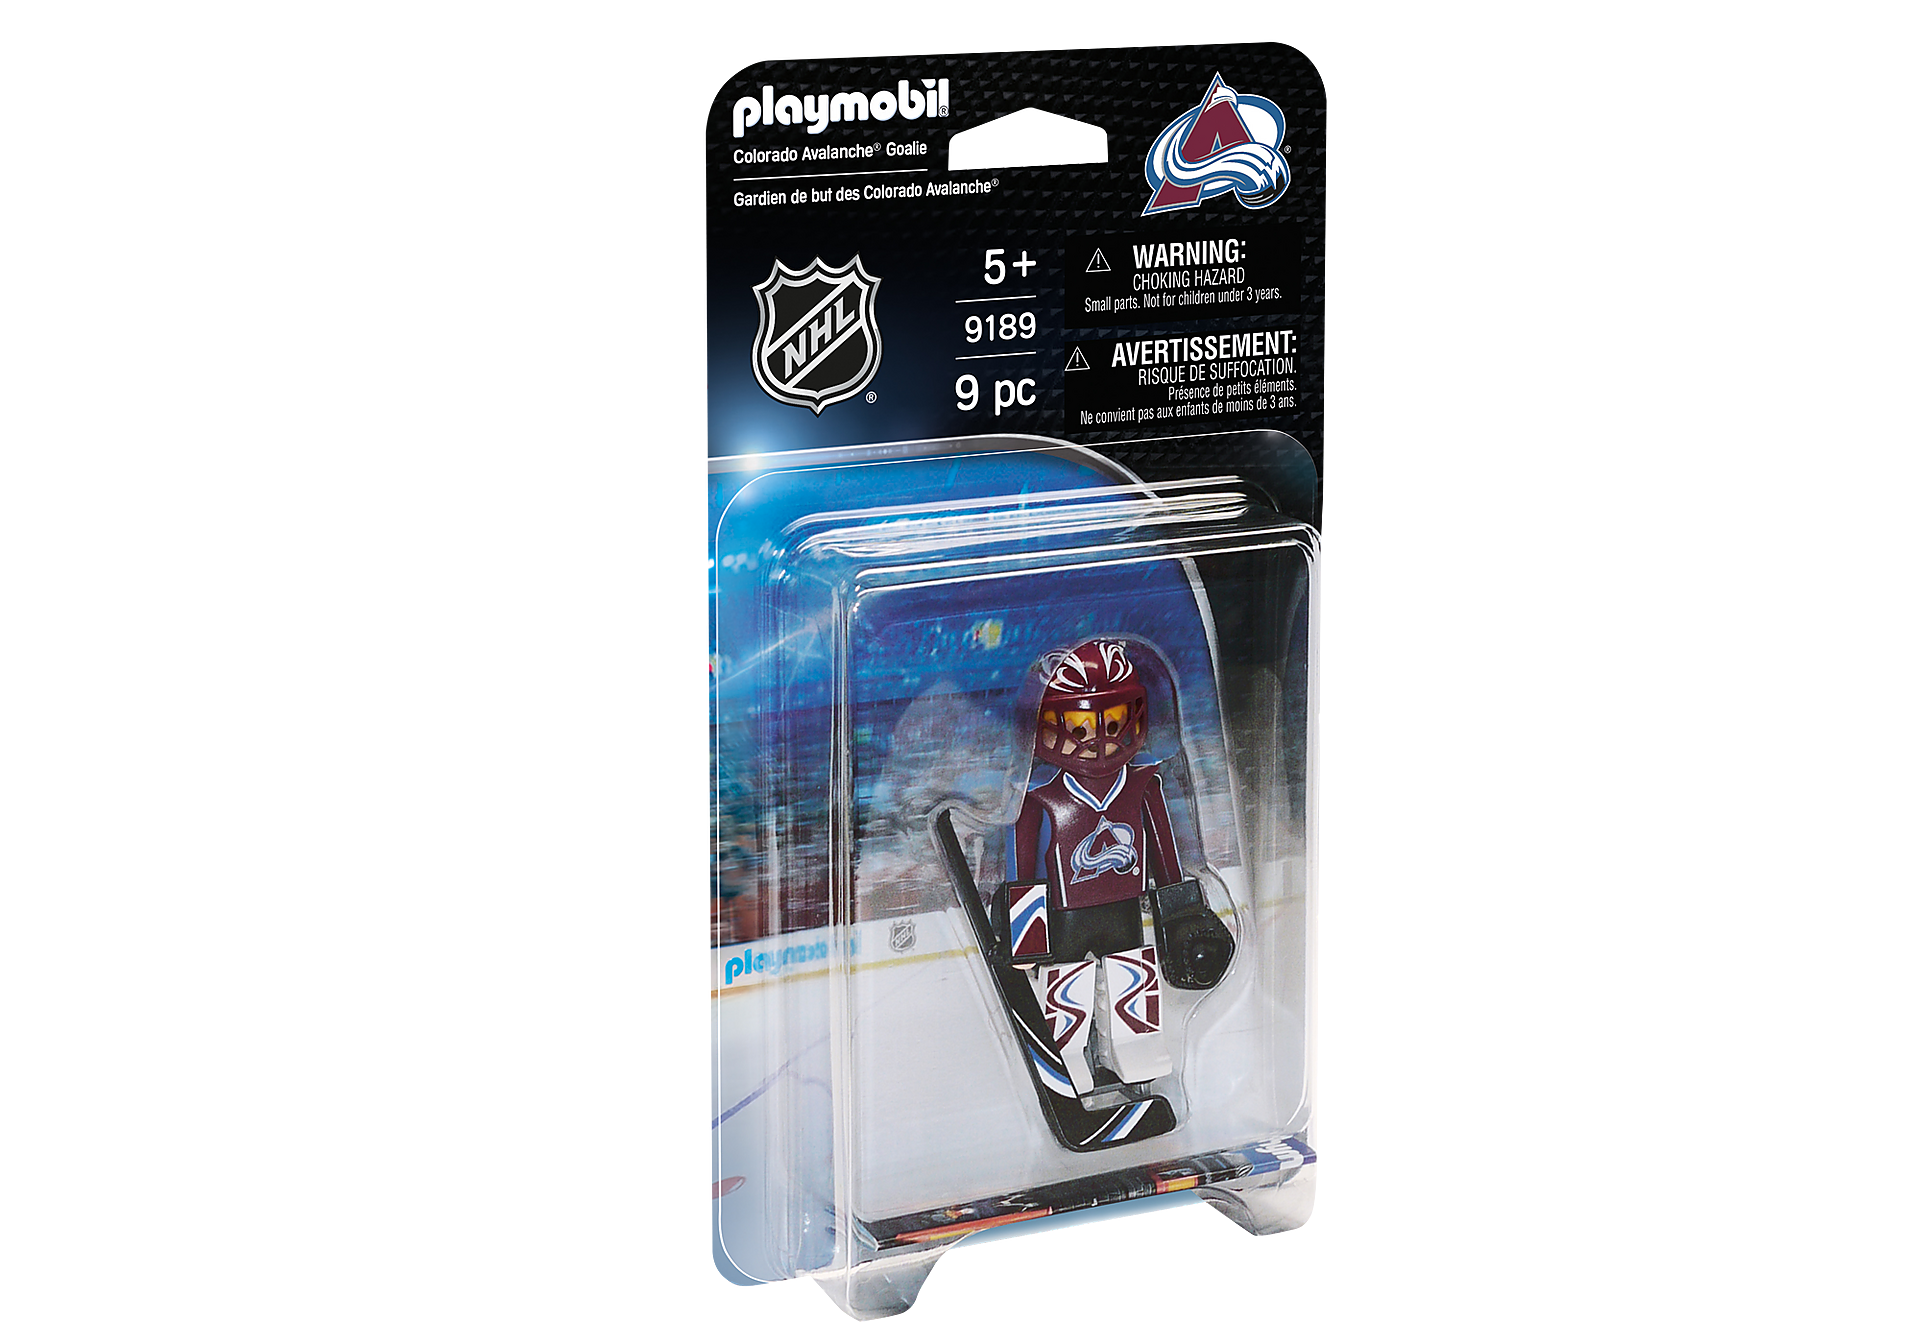 http://media.playmobil.com/i/playmobil/9189_product_box_front/NHL™ Colorado Avalanche™ Goalie